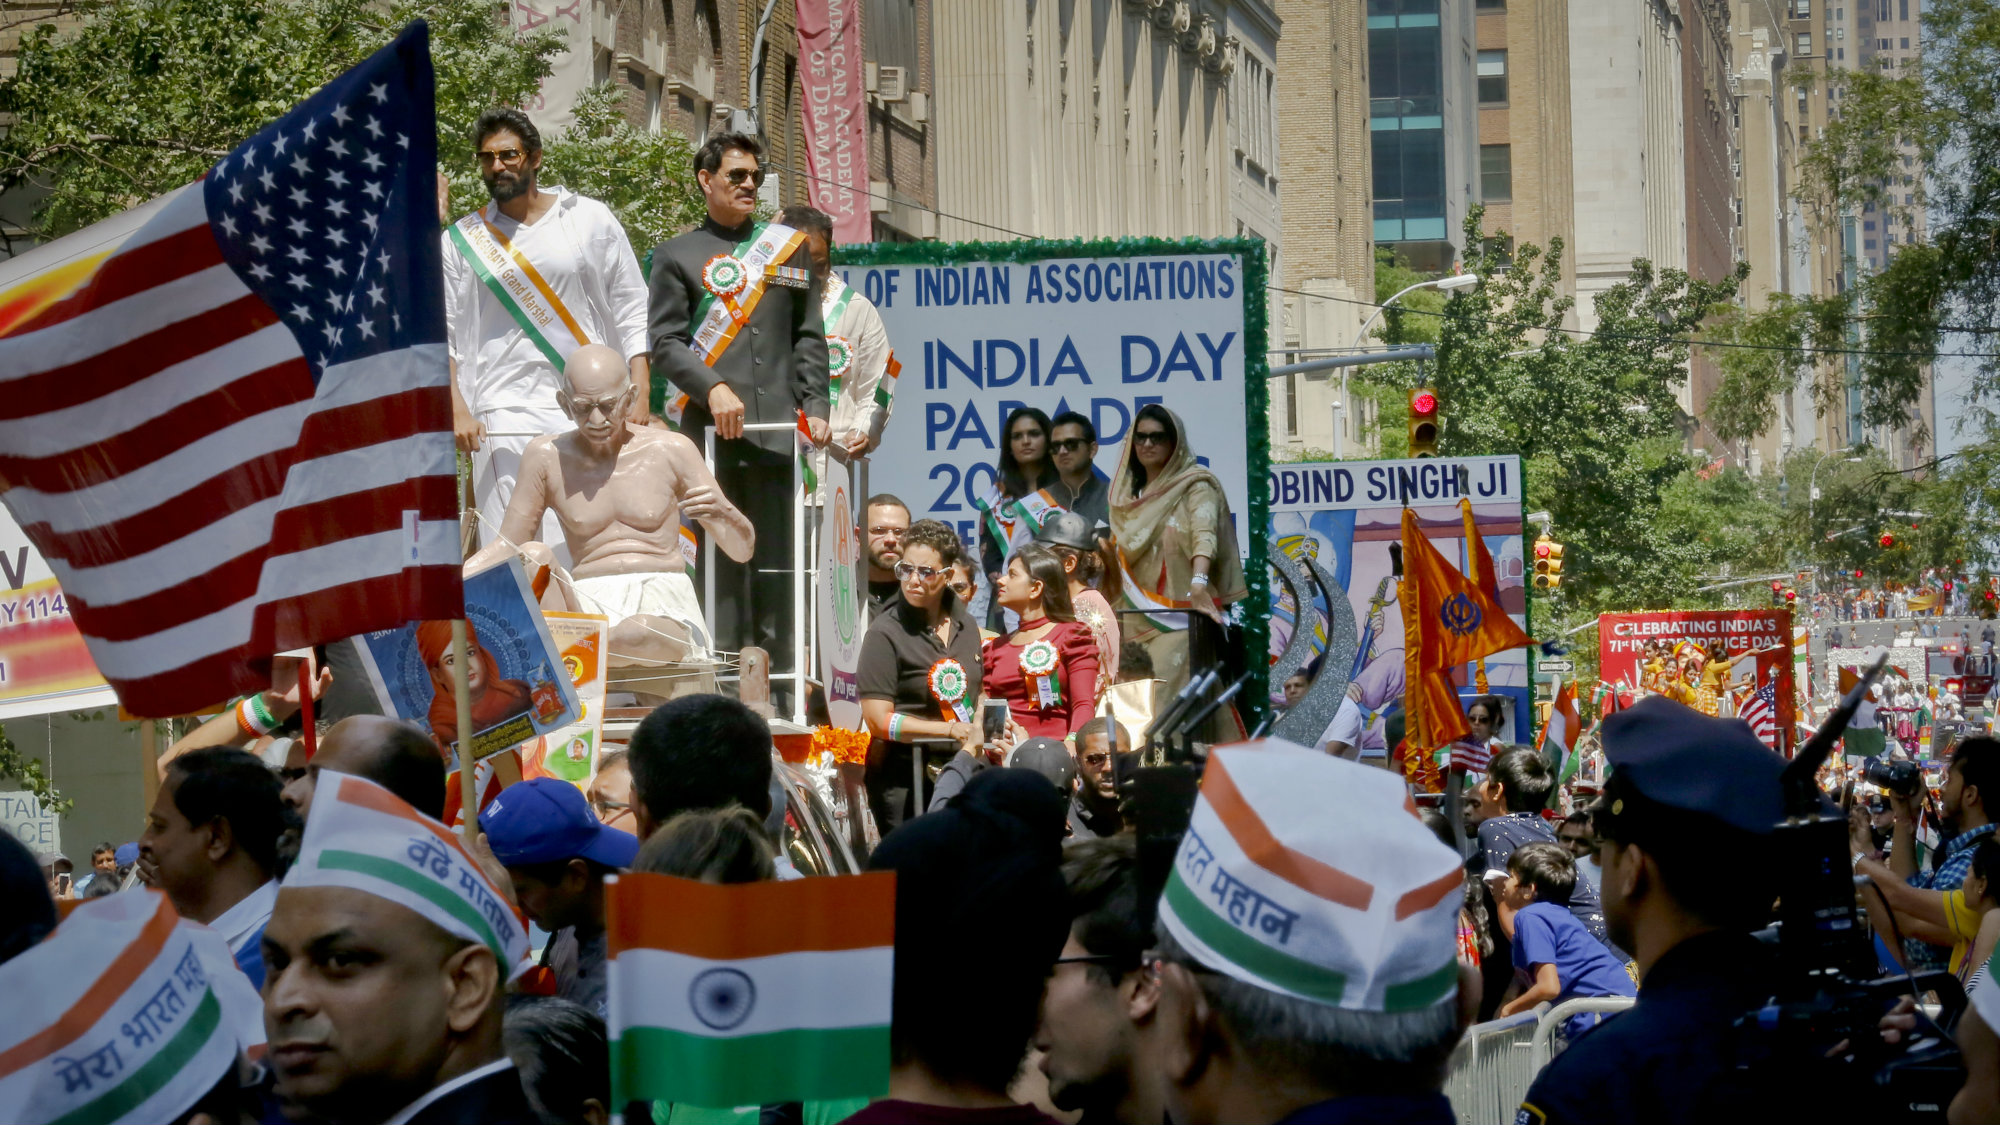 Scene during India Day parade, celebrating the 71st independence day of India, Sunday Aug. 20, 2017, in New York